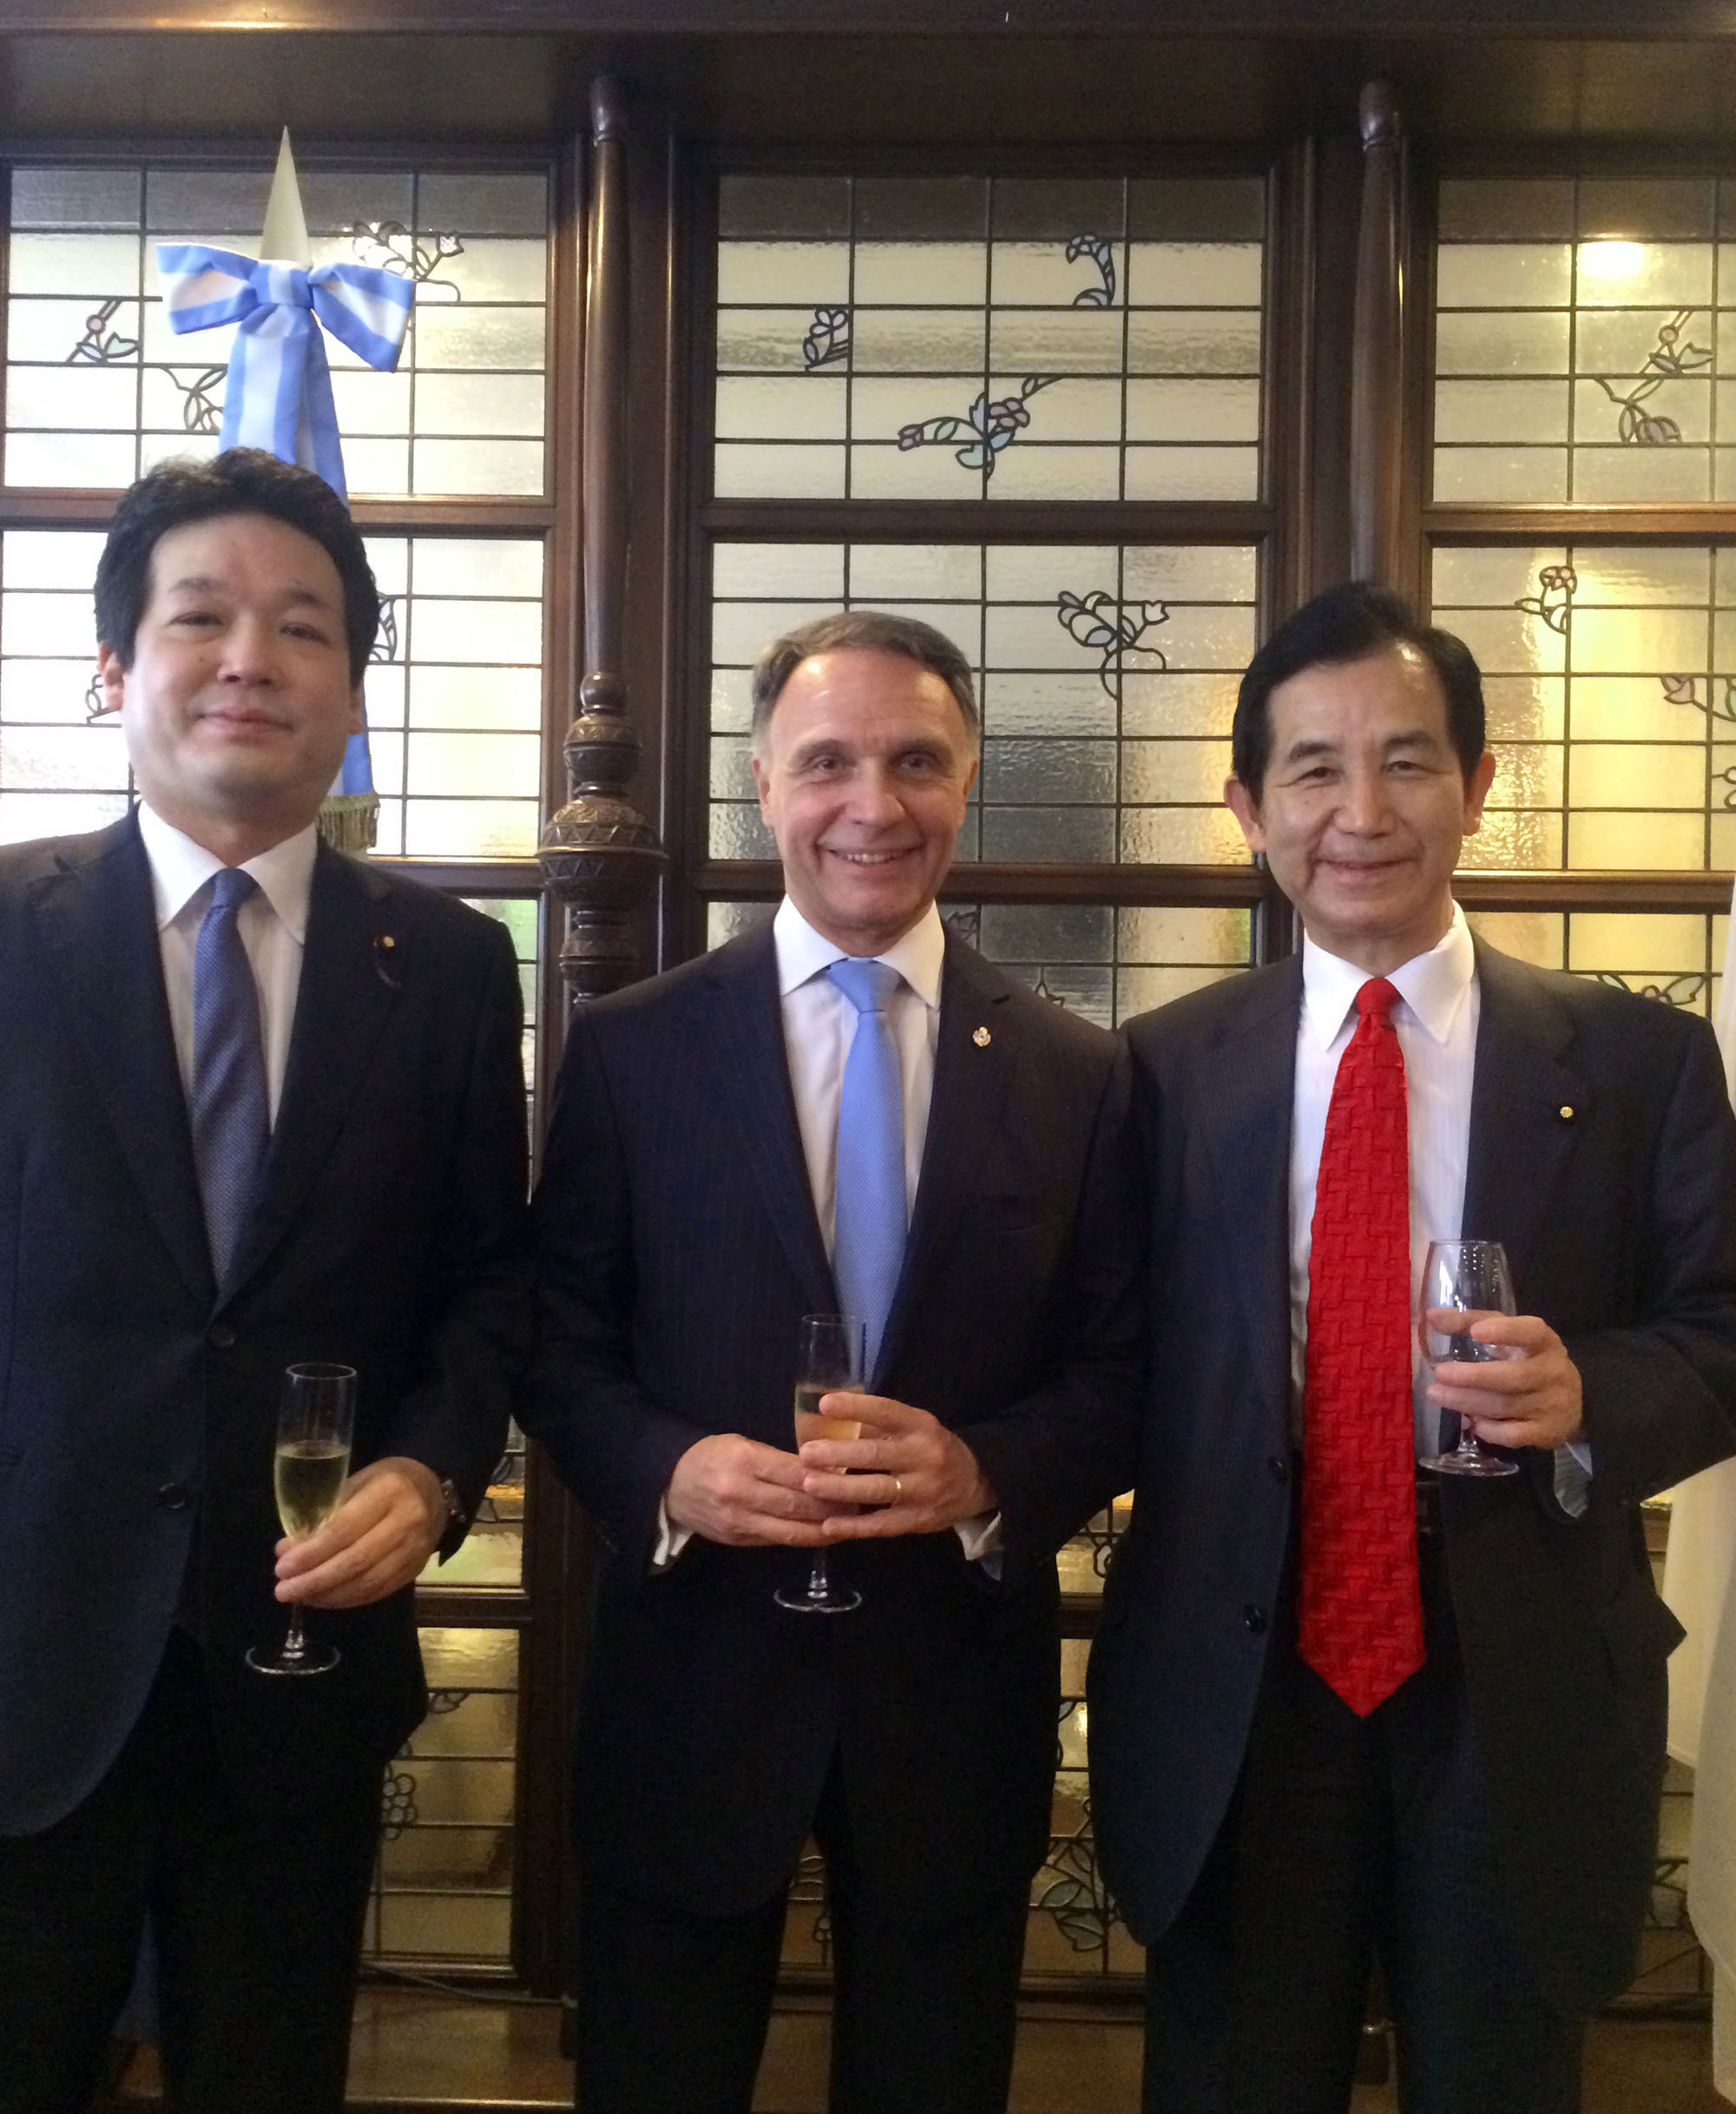 Argentine Ambassador Alan Beraud (center) poses with State Minister for Foreign Affairs Kentaro Sonoura (left) and Kozo Yamamoto, minister of state for regional revitalization and chairman of the Japan-Argentina Parliamentarary Friendship League, during a reception in Tokyo on May 25 to celebrate Argentina's National Day. |   COURTESY OF THE ARGENTINE EMBASSY